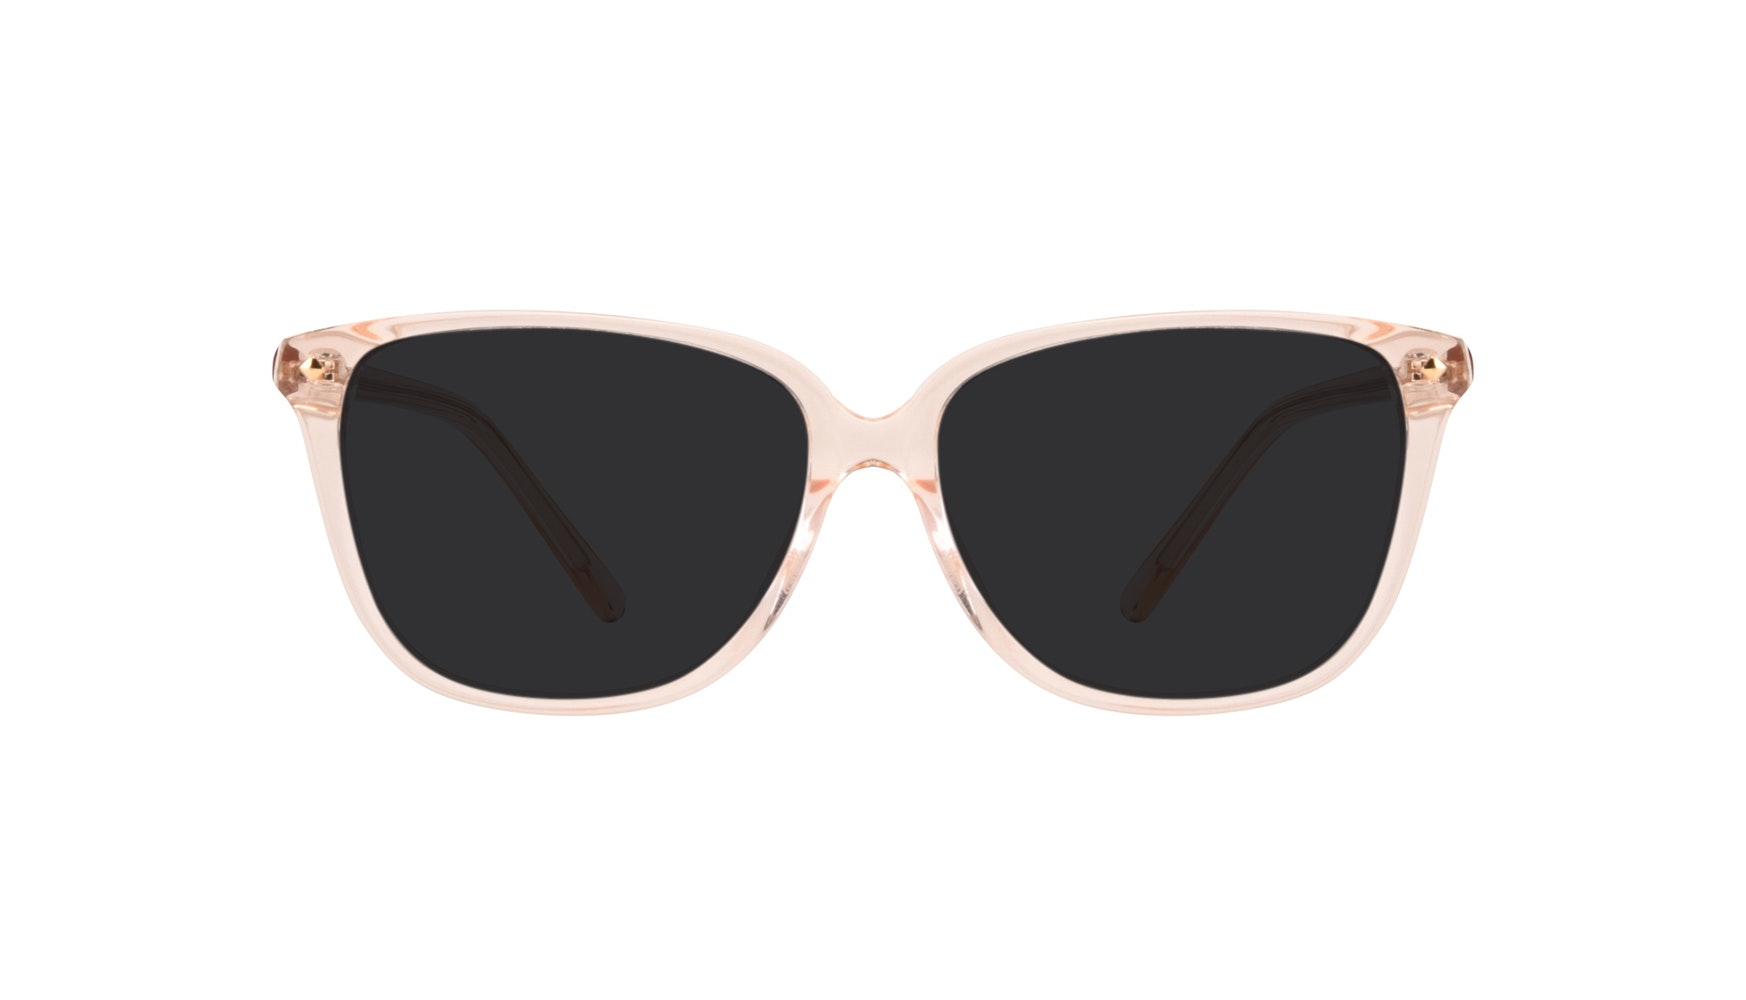 Affordable Fashion Glasses Rectangle Square Sunglasses Women Muse Blond Front